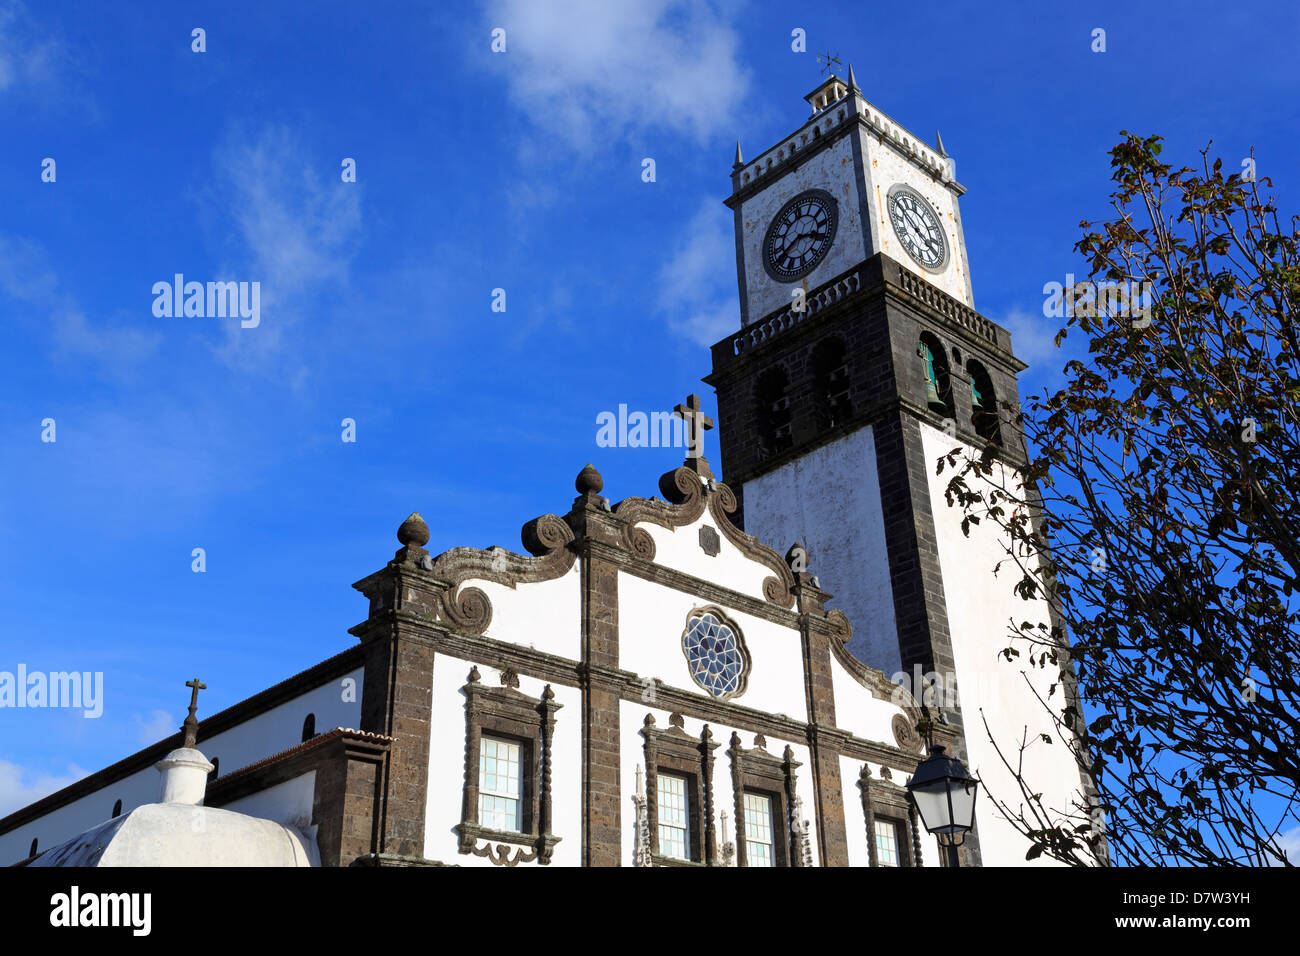 Main Church clock tower, Ponta Delgada City, Sao Miguel Island, Azores, Portugal - Stock Image